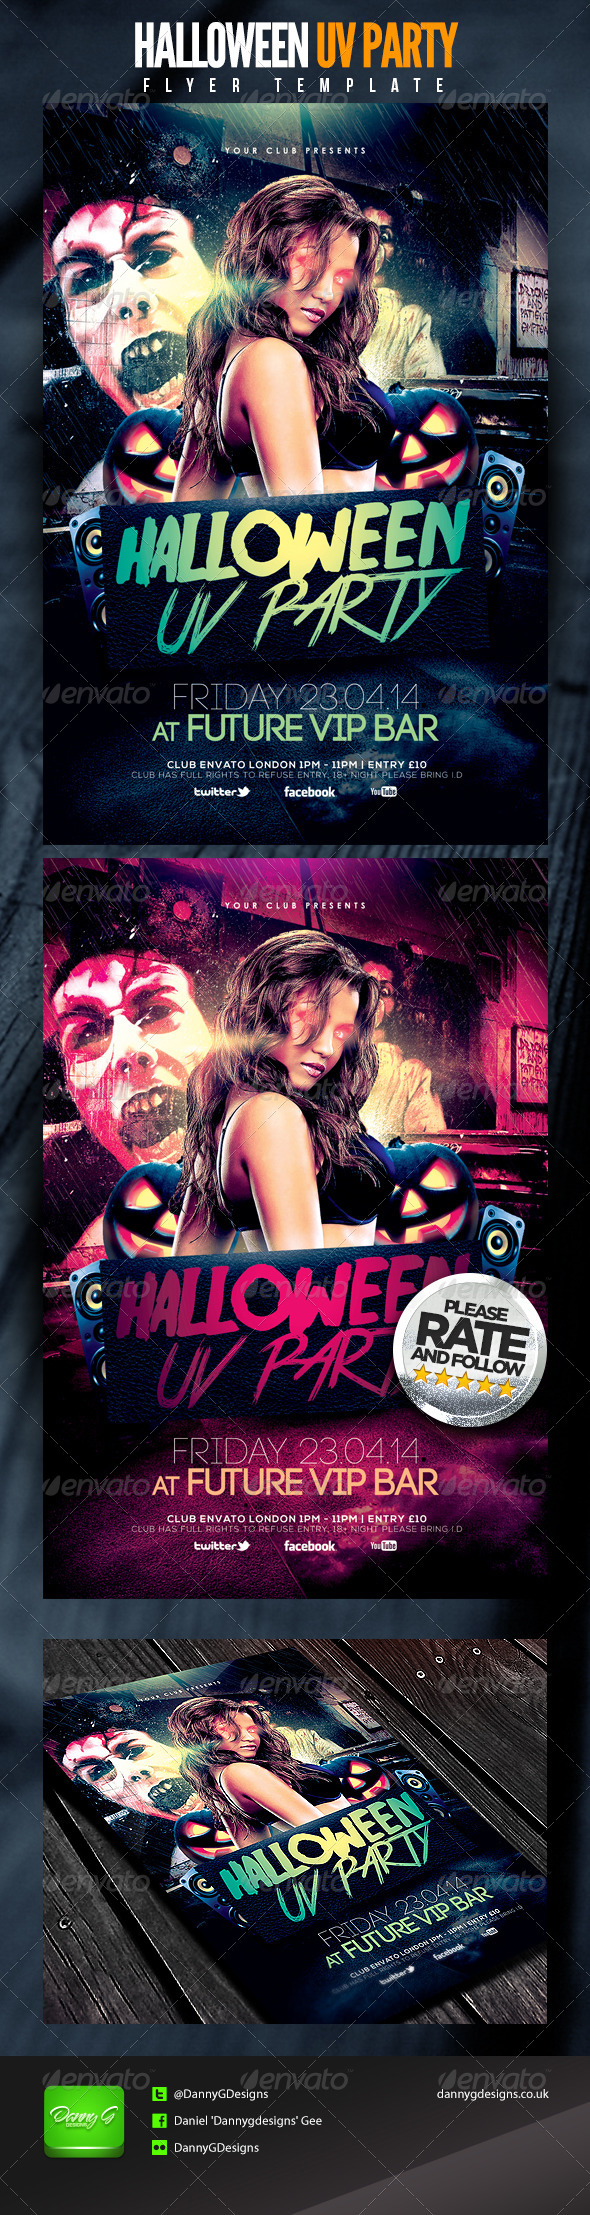 Halloween UV Party Flyer Template